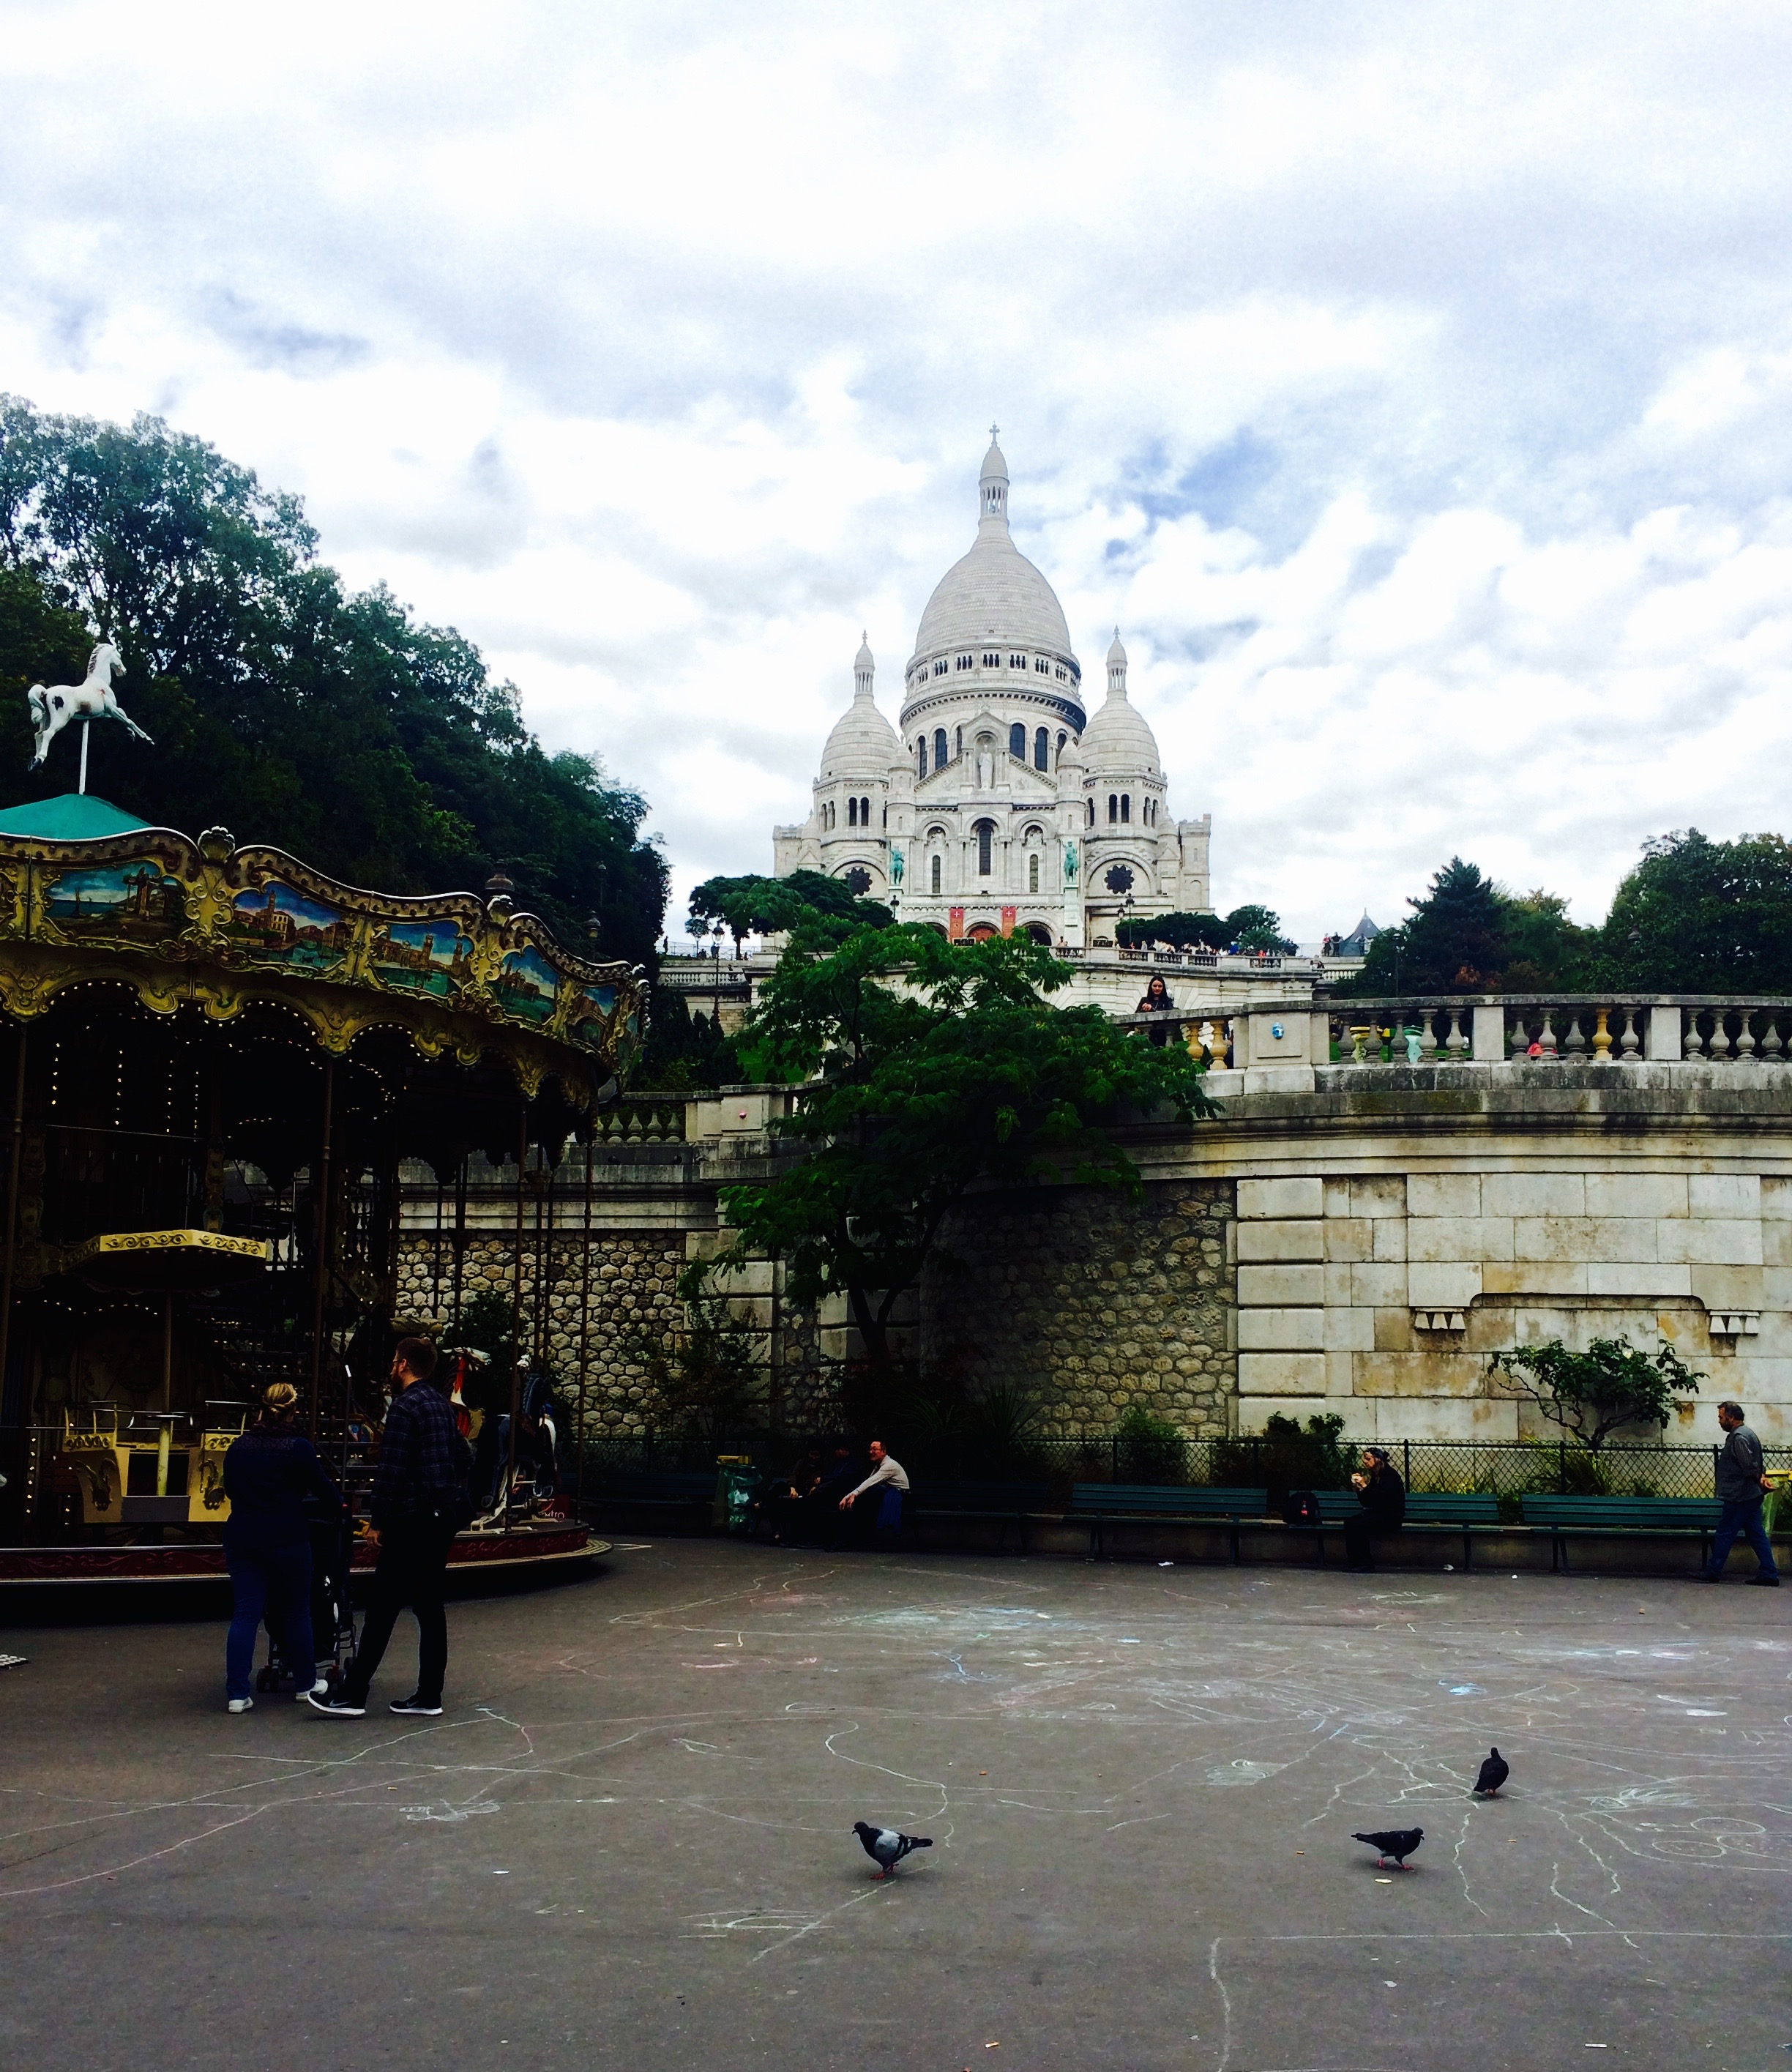 The must visit place in Paris, Monmartre